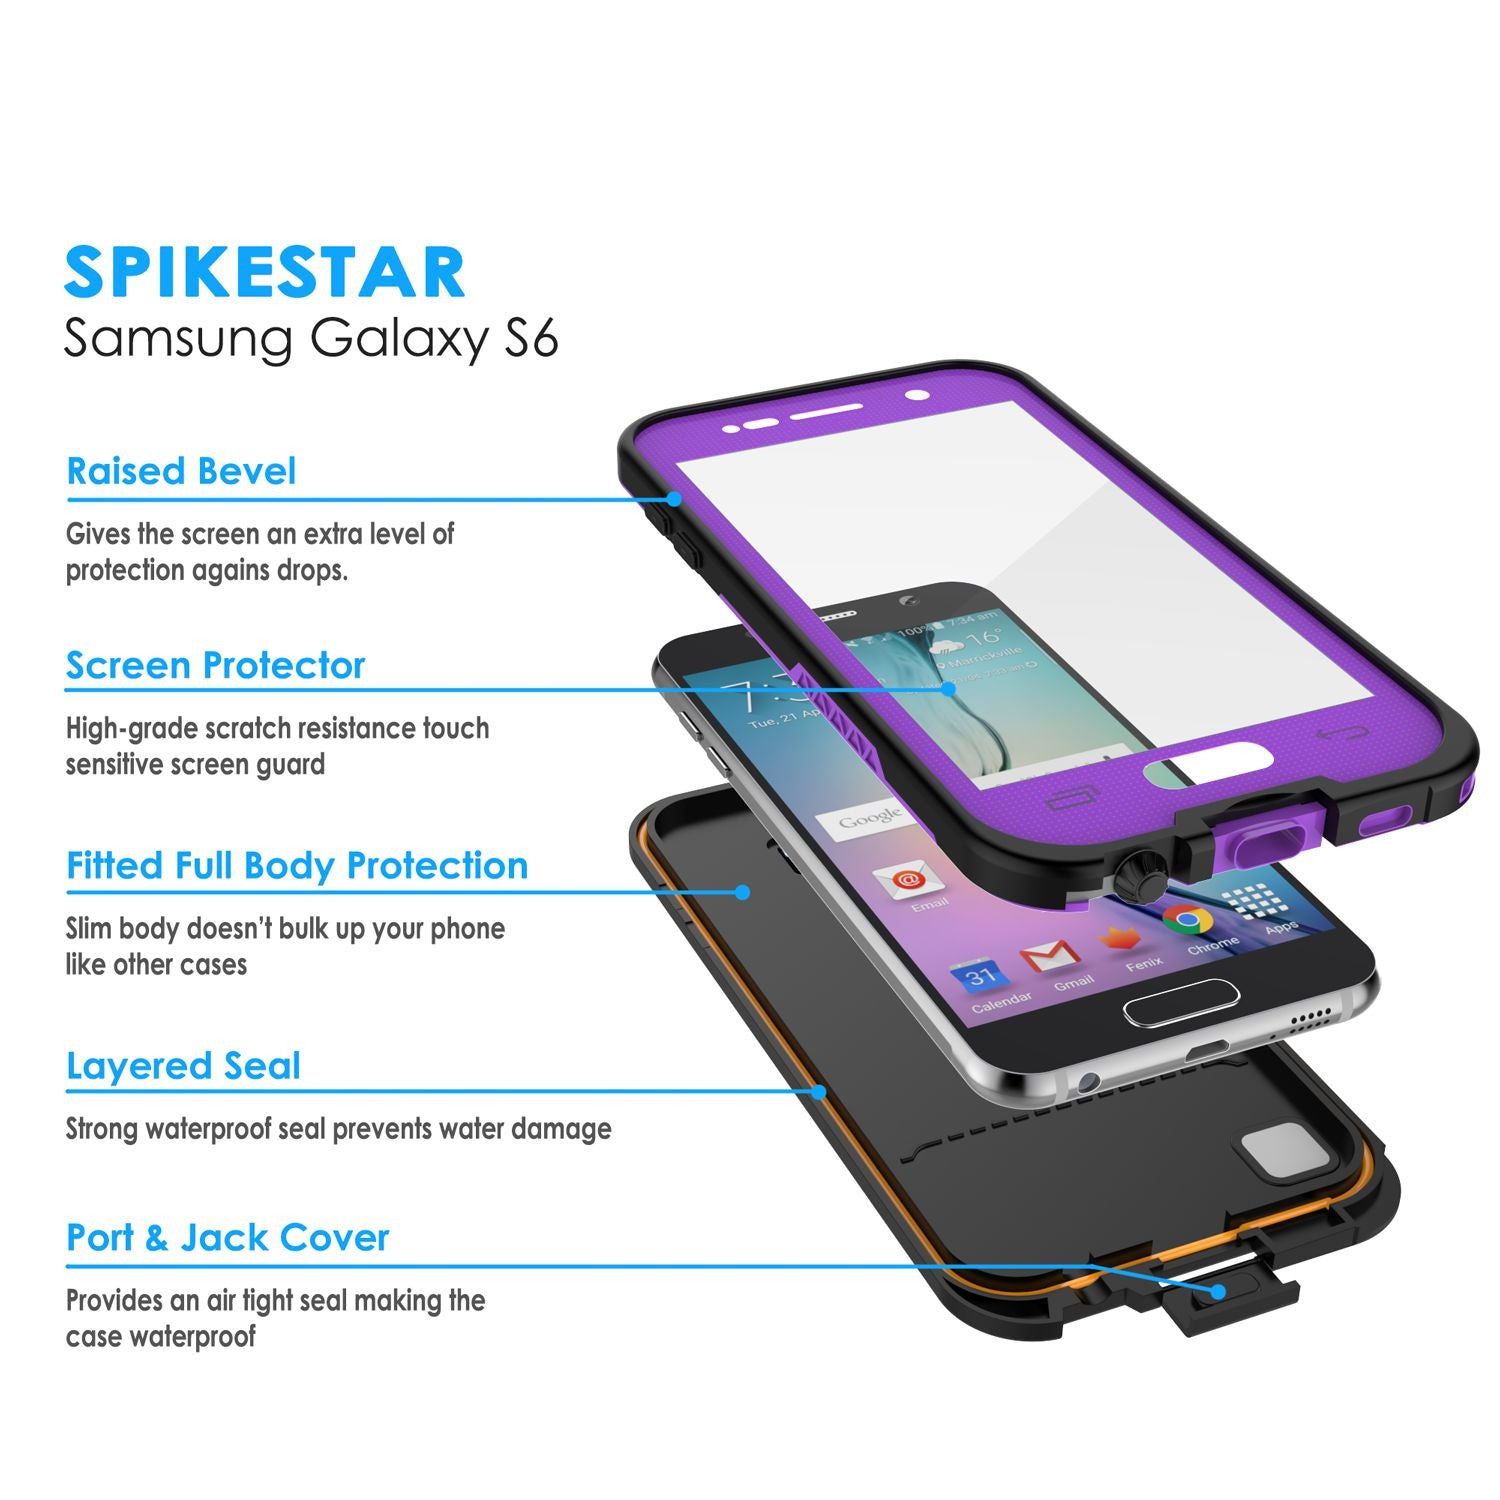 Galaxy S6 Waterproof Case, PunkCase SpikeStar Purple Water/Shock/Dirt/Snow Proof | Lifetime Warranty